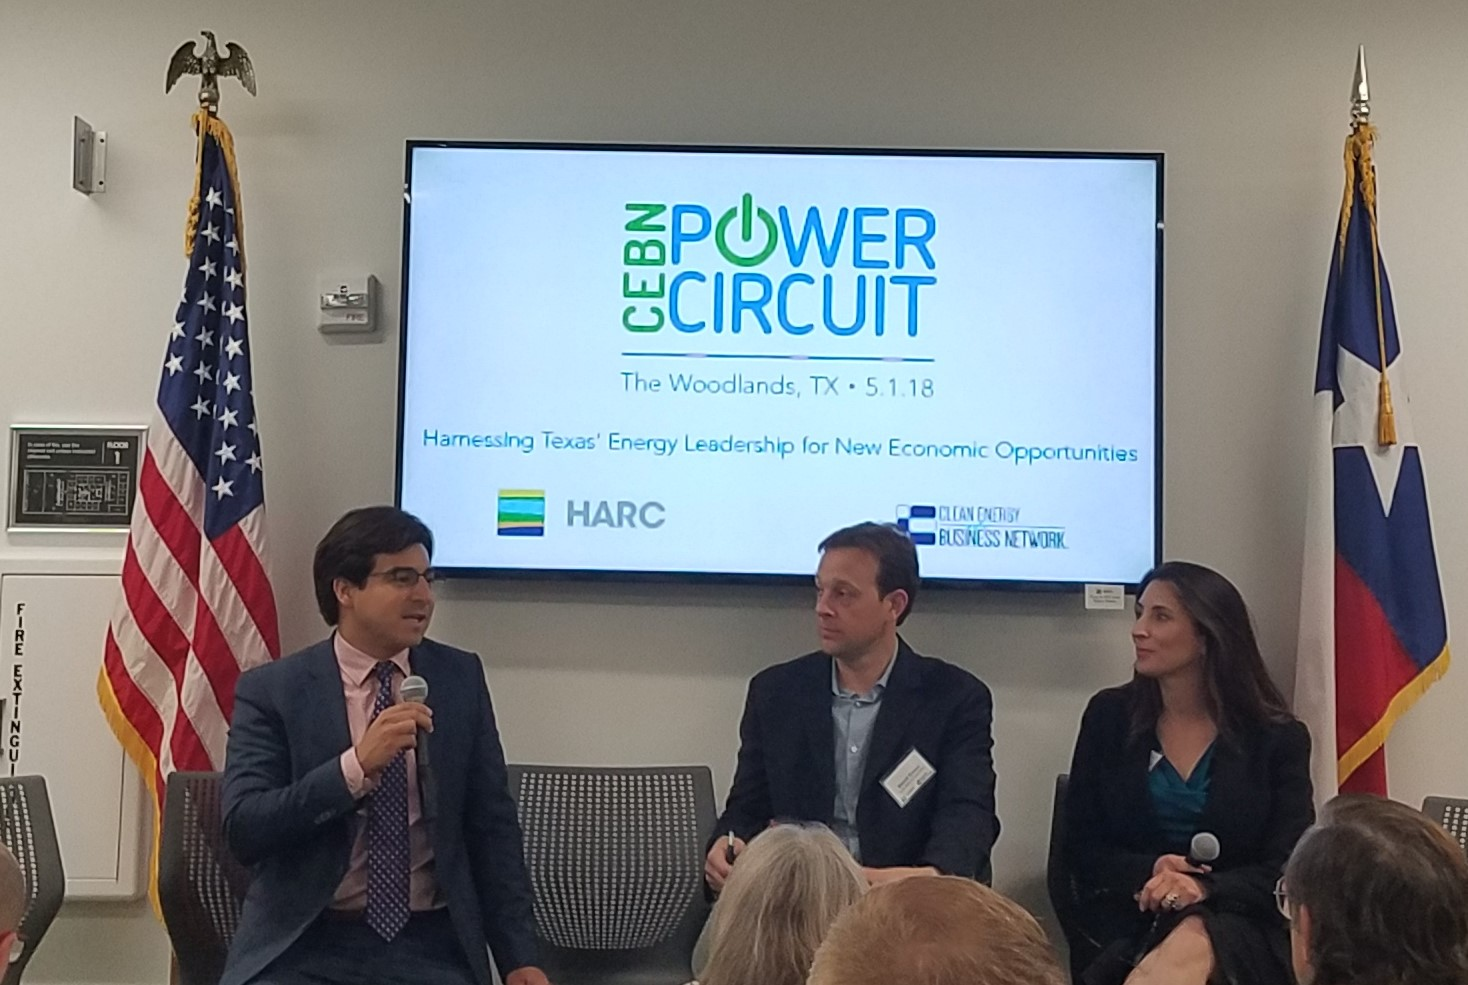 Charles Hernick, Policy Director, Citizens for Responsible Energy Solutions (CRES) Forum; David Green, Deputy Director, Coastal Resources, General Lands Office; and Barbara Canales, Commissioner, Port of Corpus Christi Authority discuss clean energy policy opportunities and challenges in Texas.